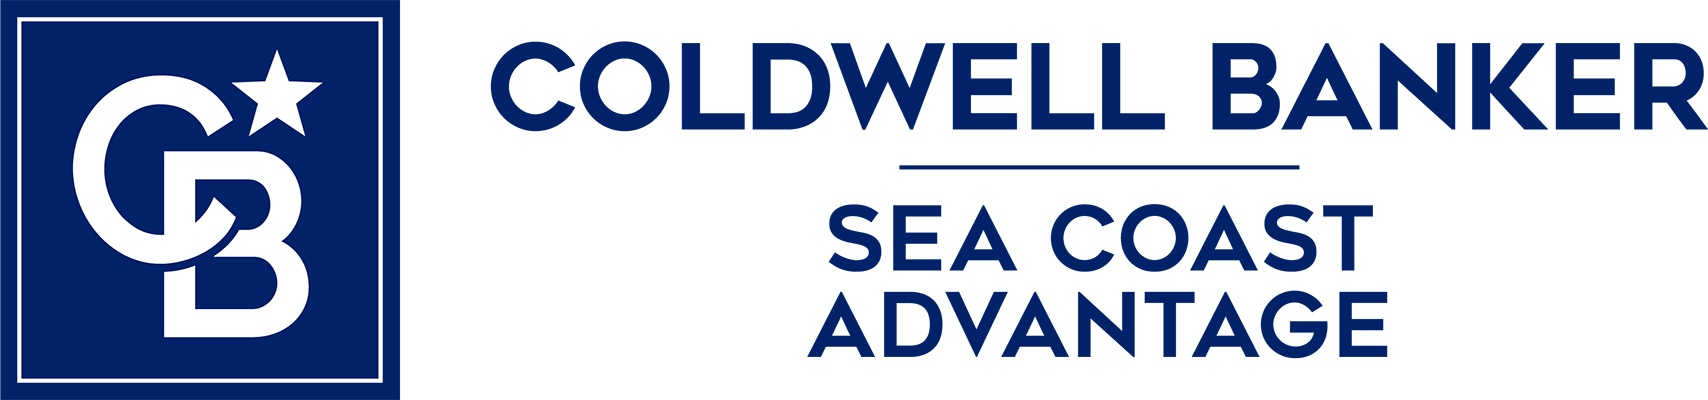 Tammy Barnes - Coldwell Banker Sea Coast Advantage Realty Logo